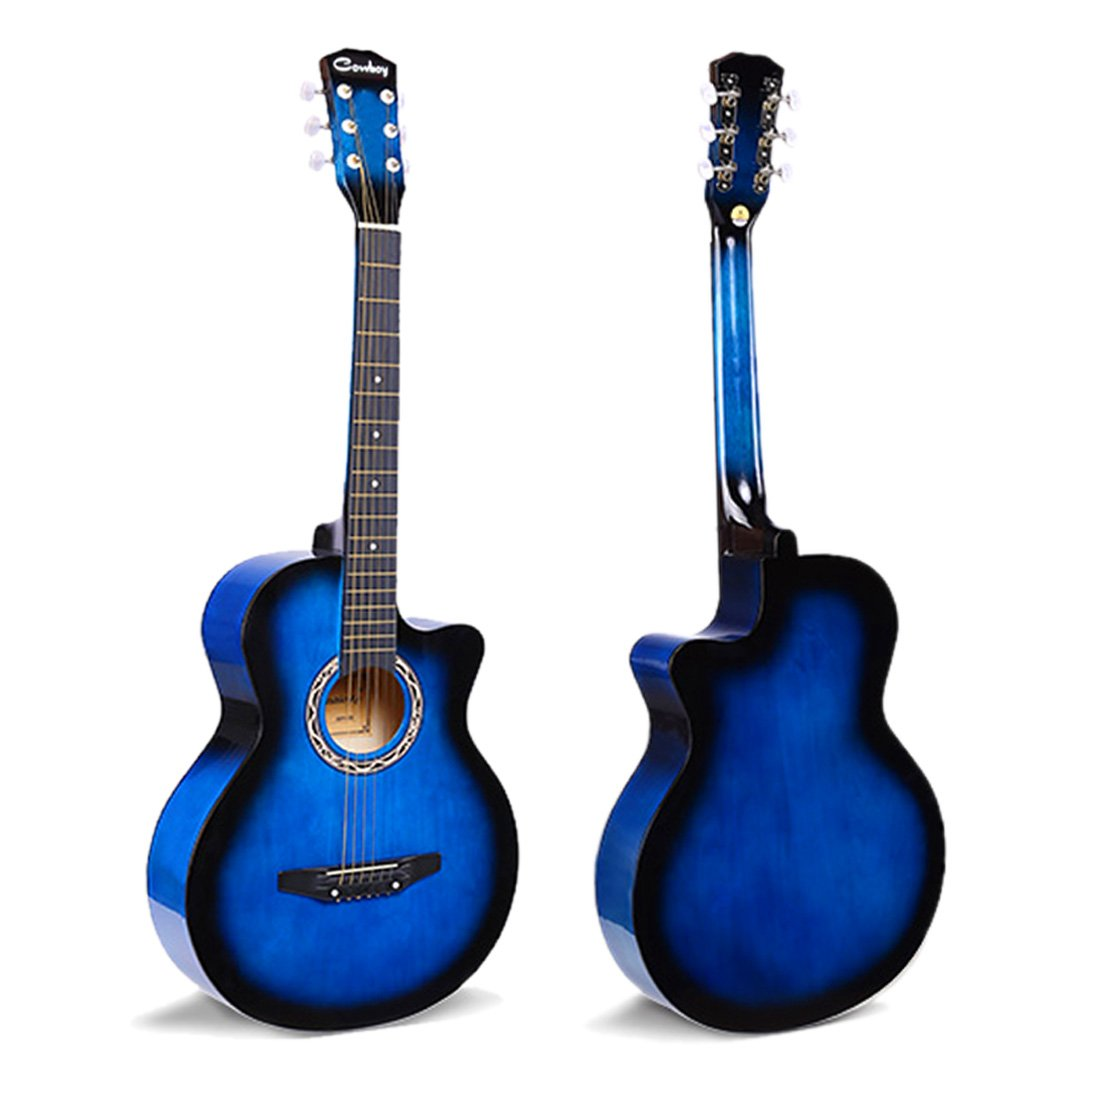 JJOnlineStore - BLUE Acoustic Classic Guitar 3/4 Size 38' For Beginners Student/Adults 6 Strings UK Performance Birthday Christmas Xmas Gift Present (Guitar Only)